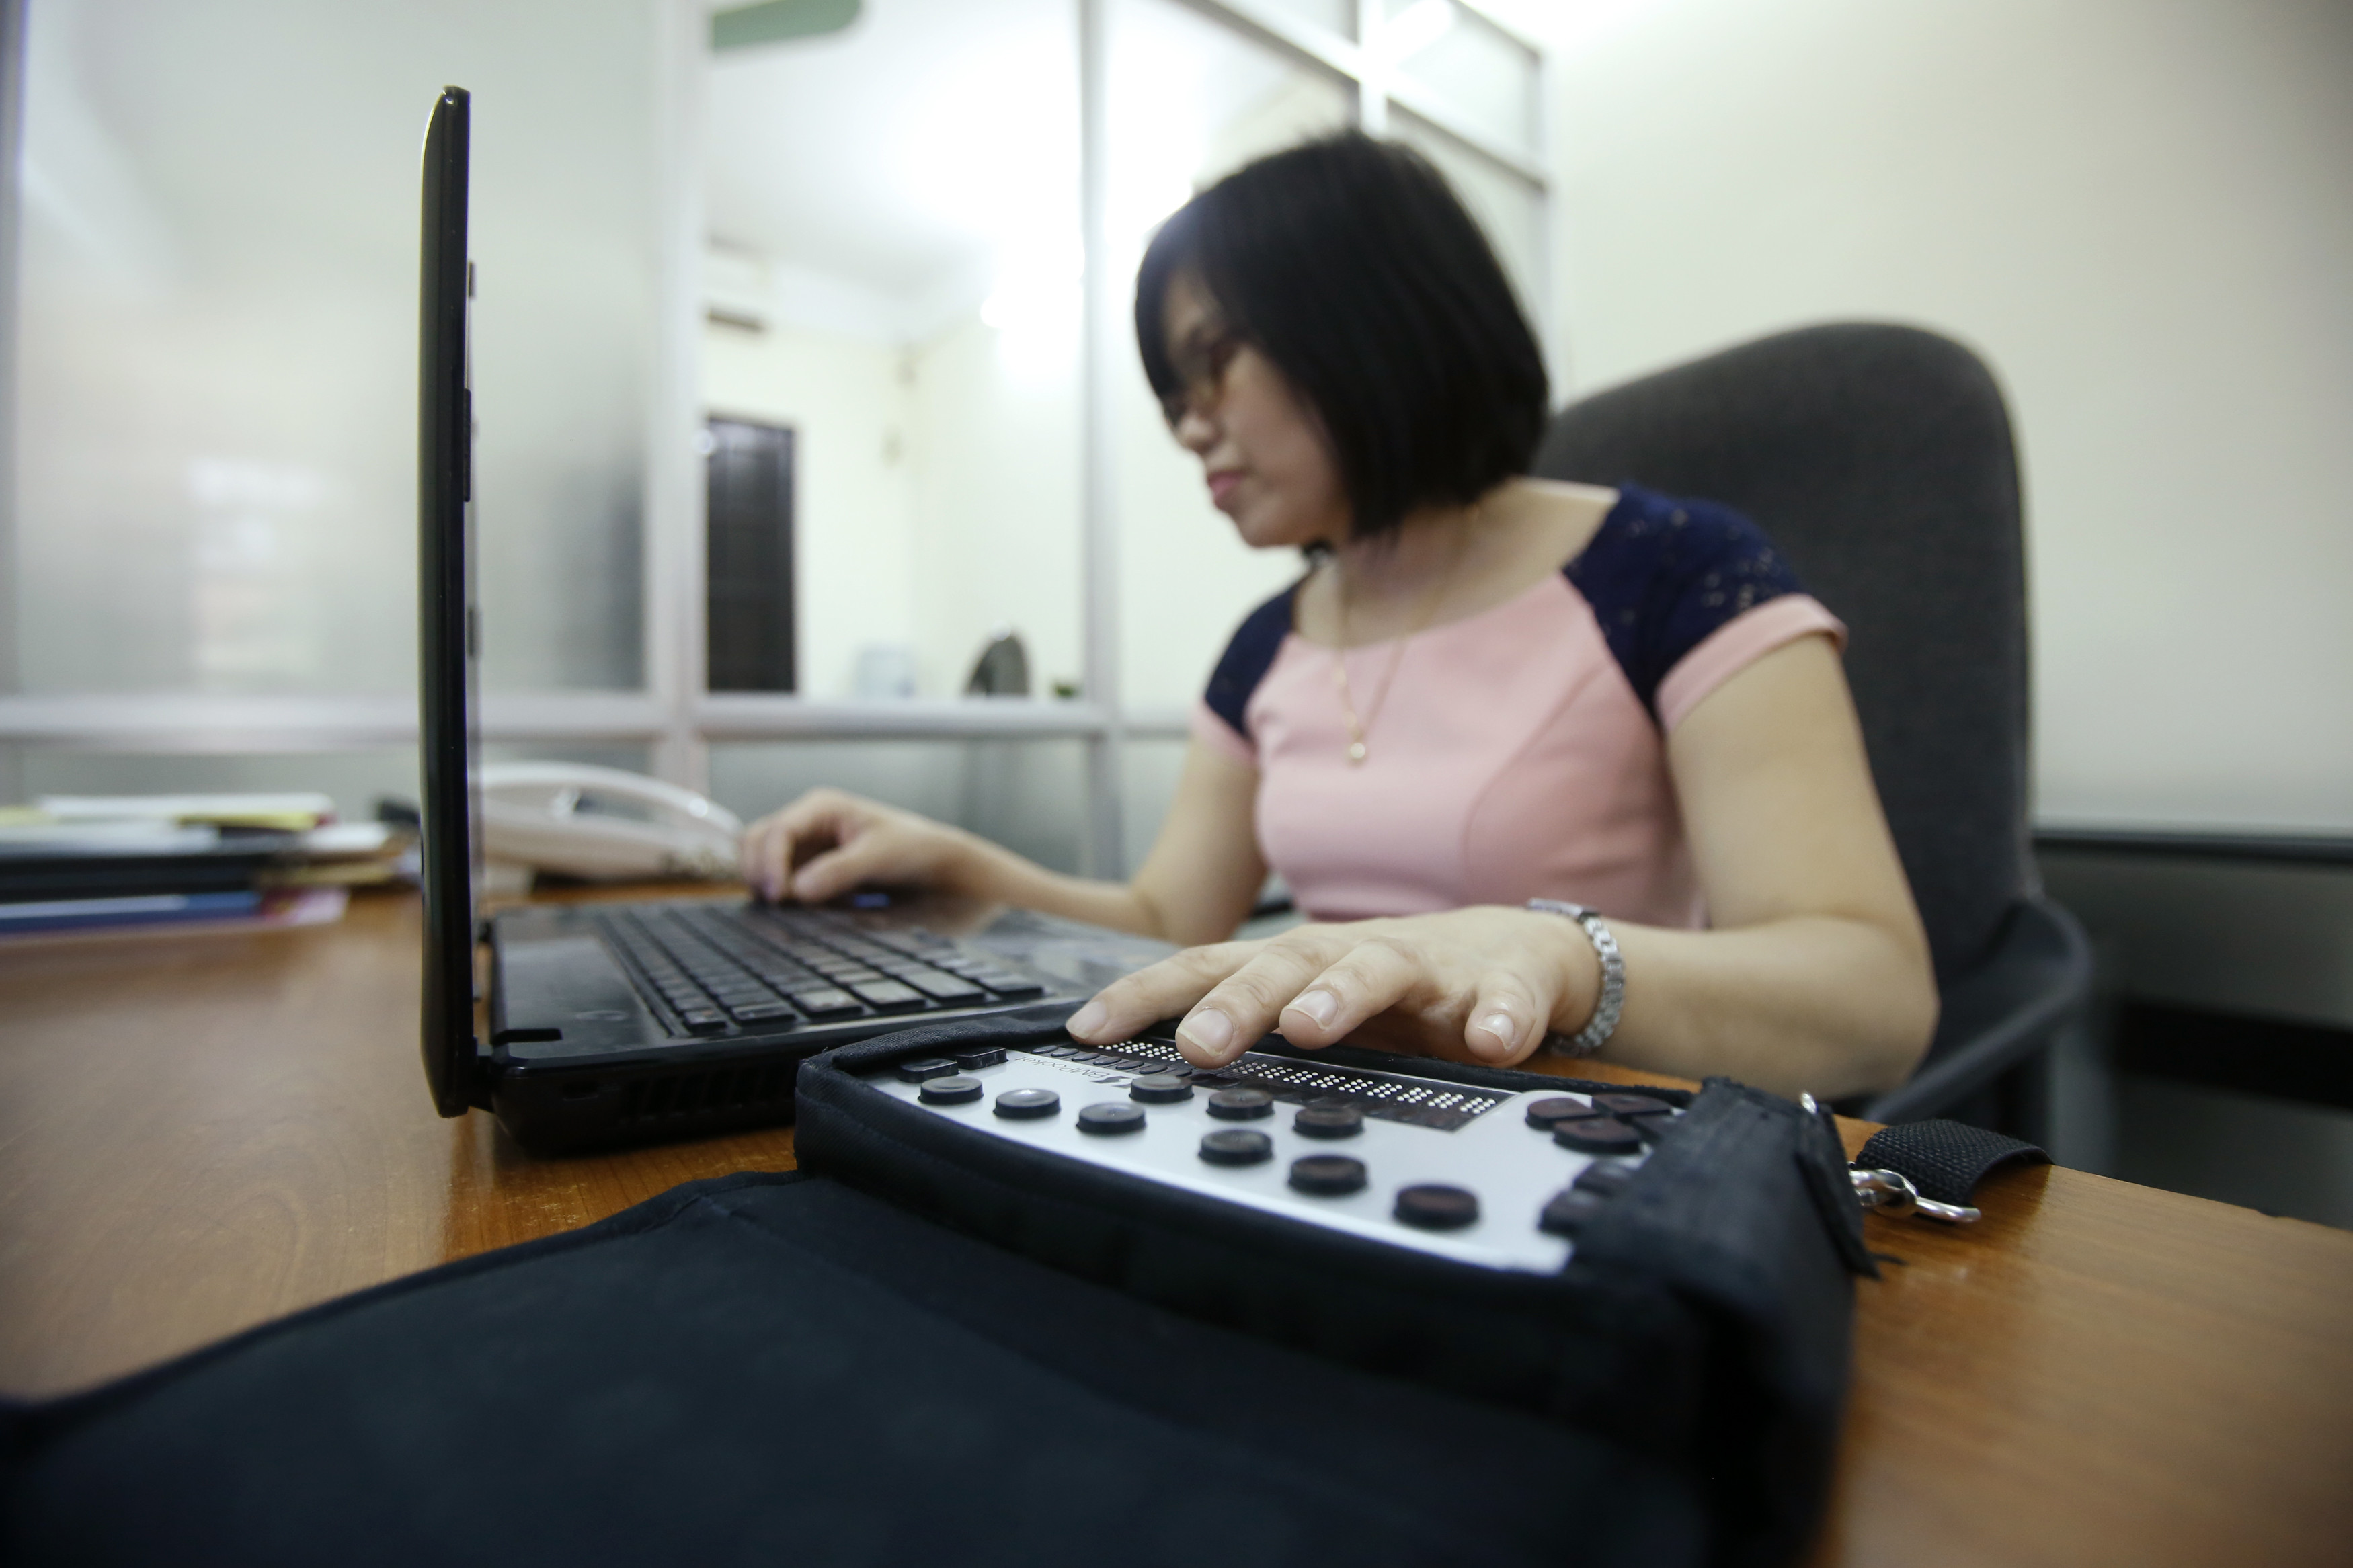 a woman who is blind, reads notes from a Braille notetaker as she works on her laptop